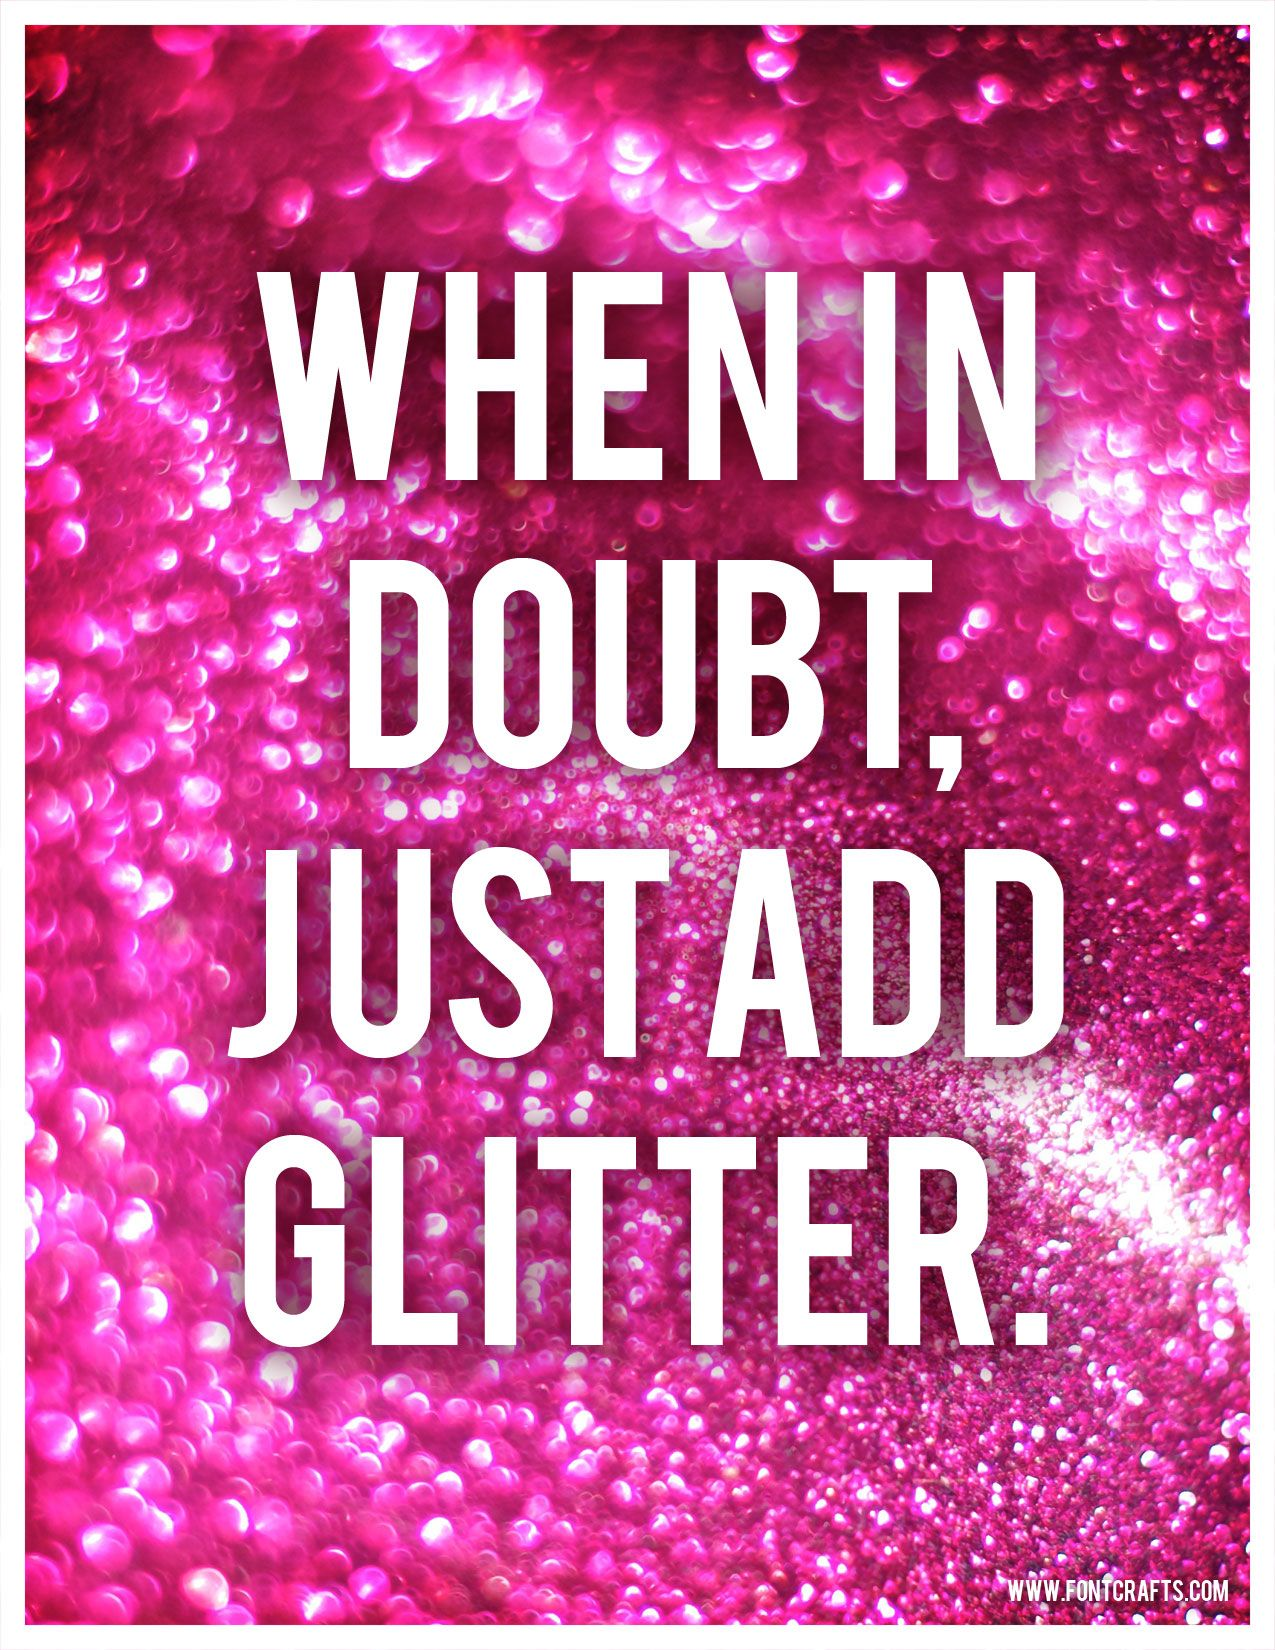 When in doubt, just add glitter printable quote art